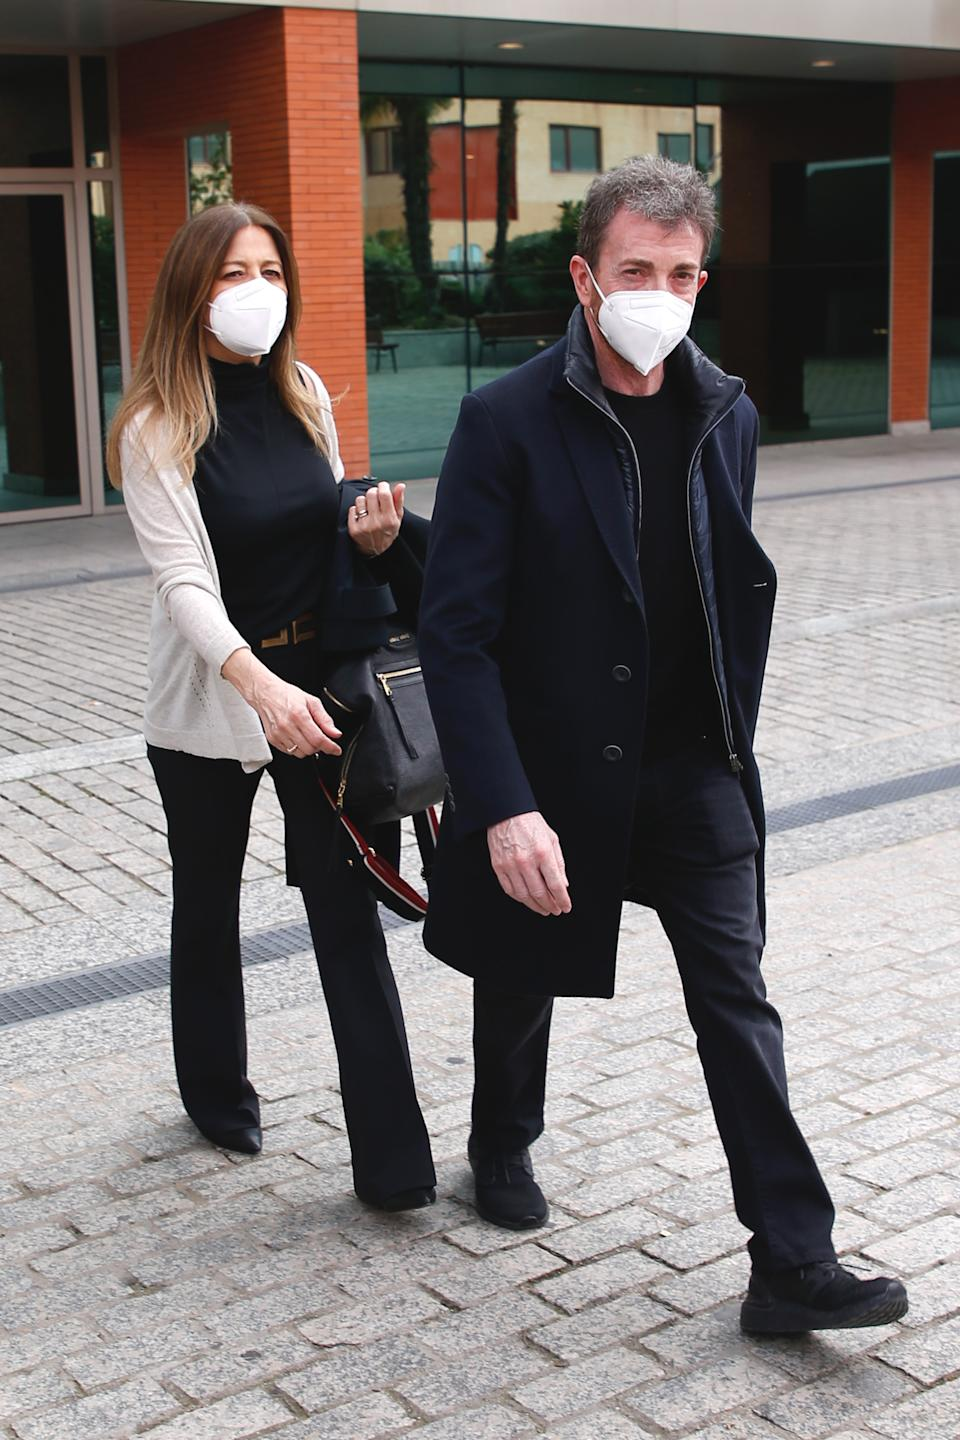 MADRID, SPAIN - MARCH 01: Laura Llopis and Pablo Motos attend the Enrique San Francisco funeral chapel at Tanatorio Norte morgue on March 02, 2021 in Madrid, Spain. (Photo by Europa Press Entertainment/Europa Press via Getty Images)